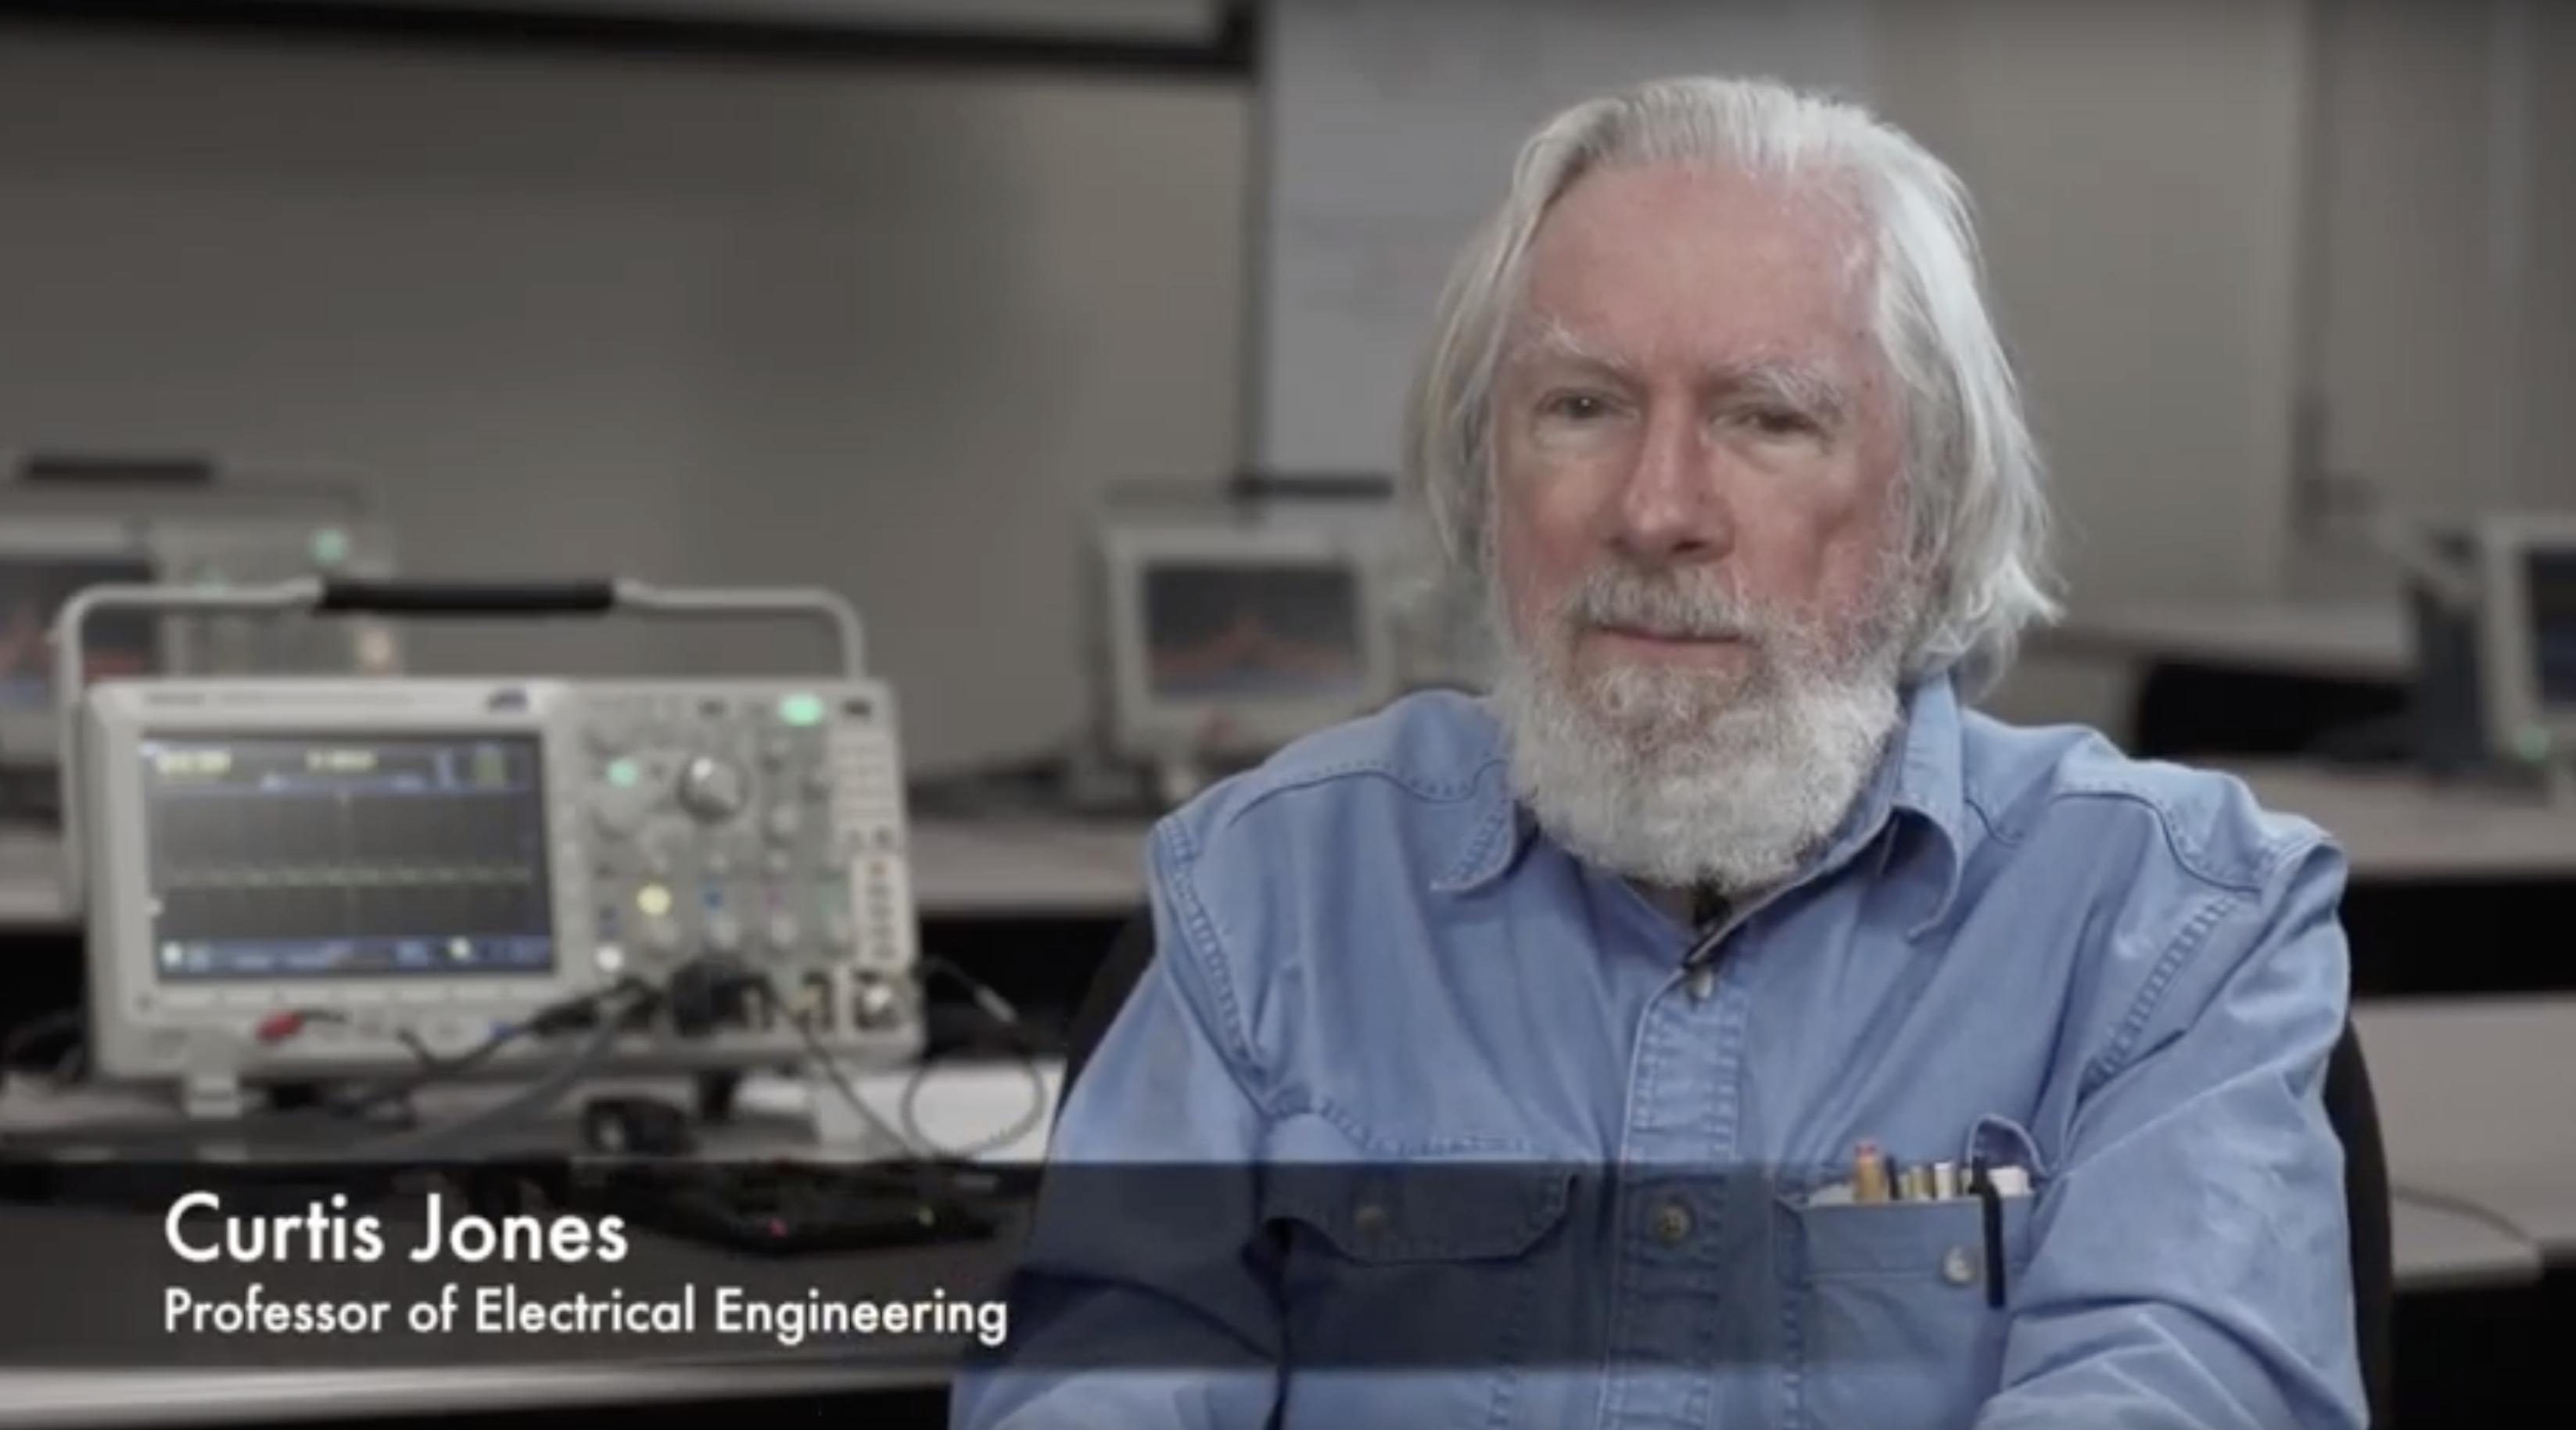 Testimonial series of web ready videos to assist Tektronix in promoting their newest flagship 6-in-1 Mixed Domain Oscilloscope.